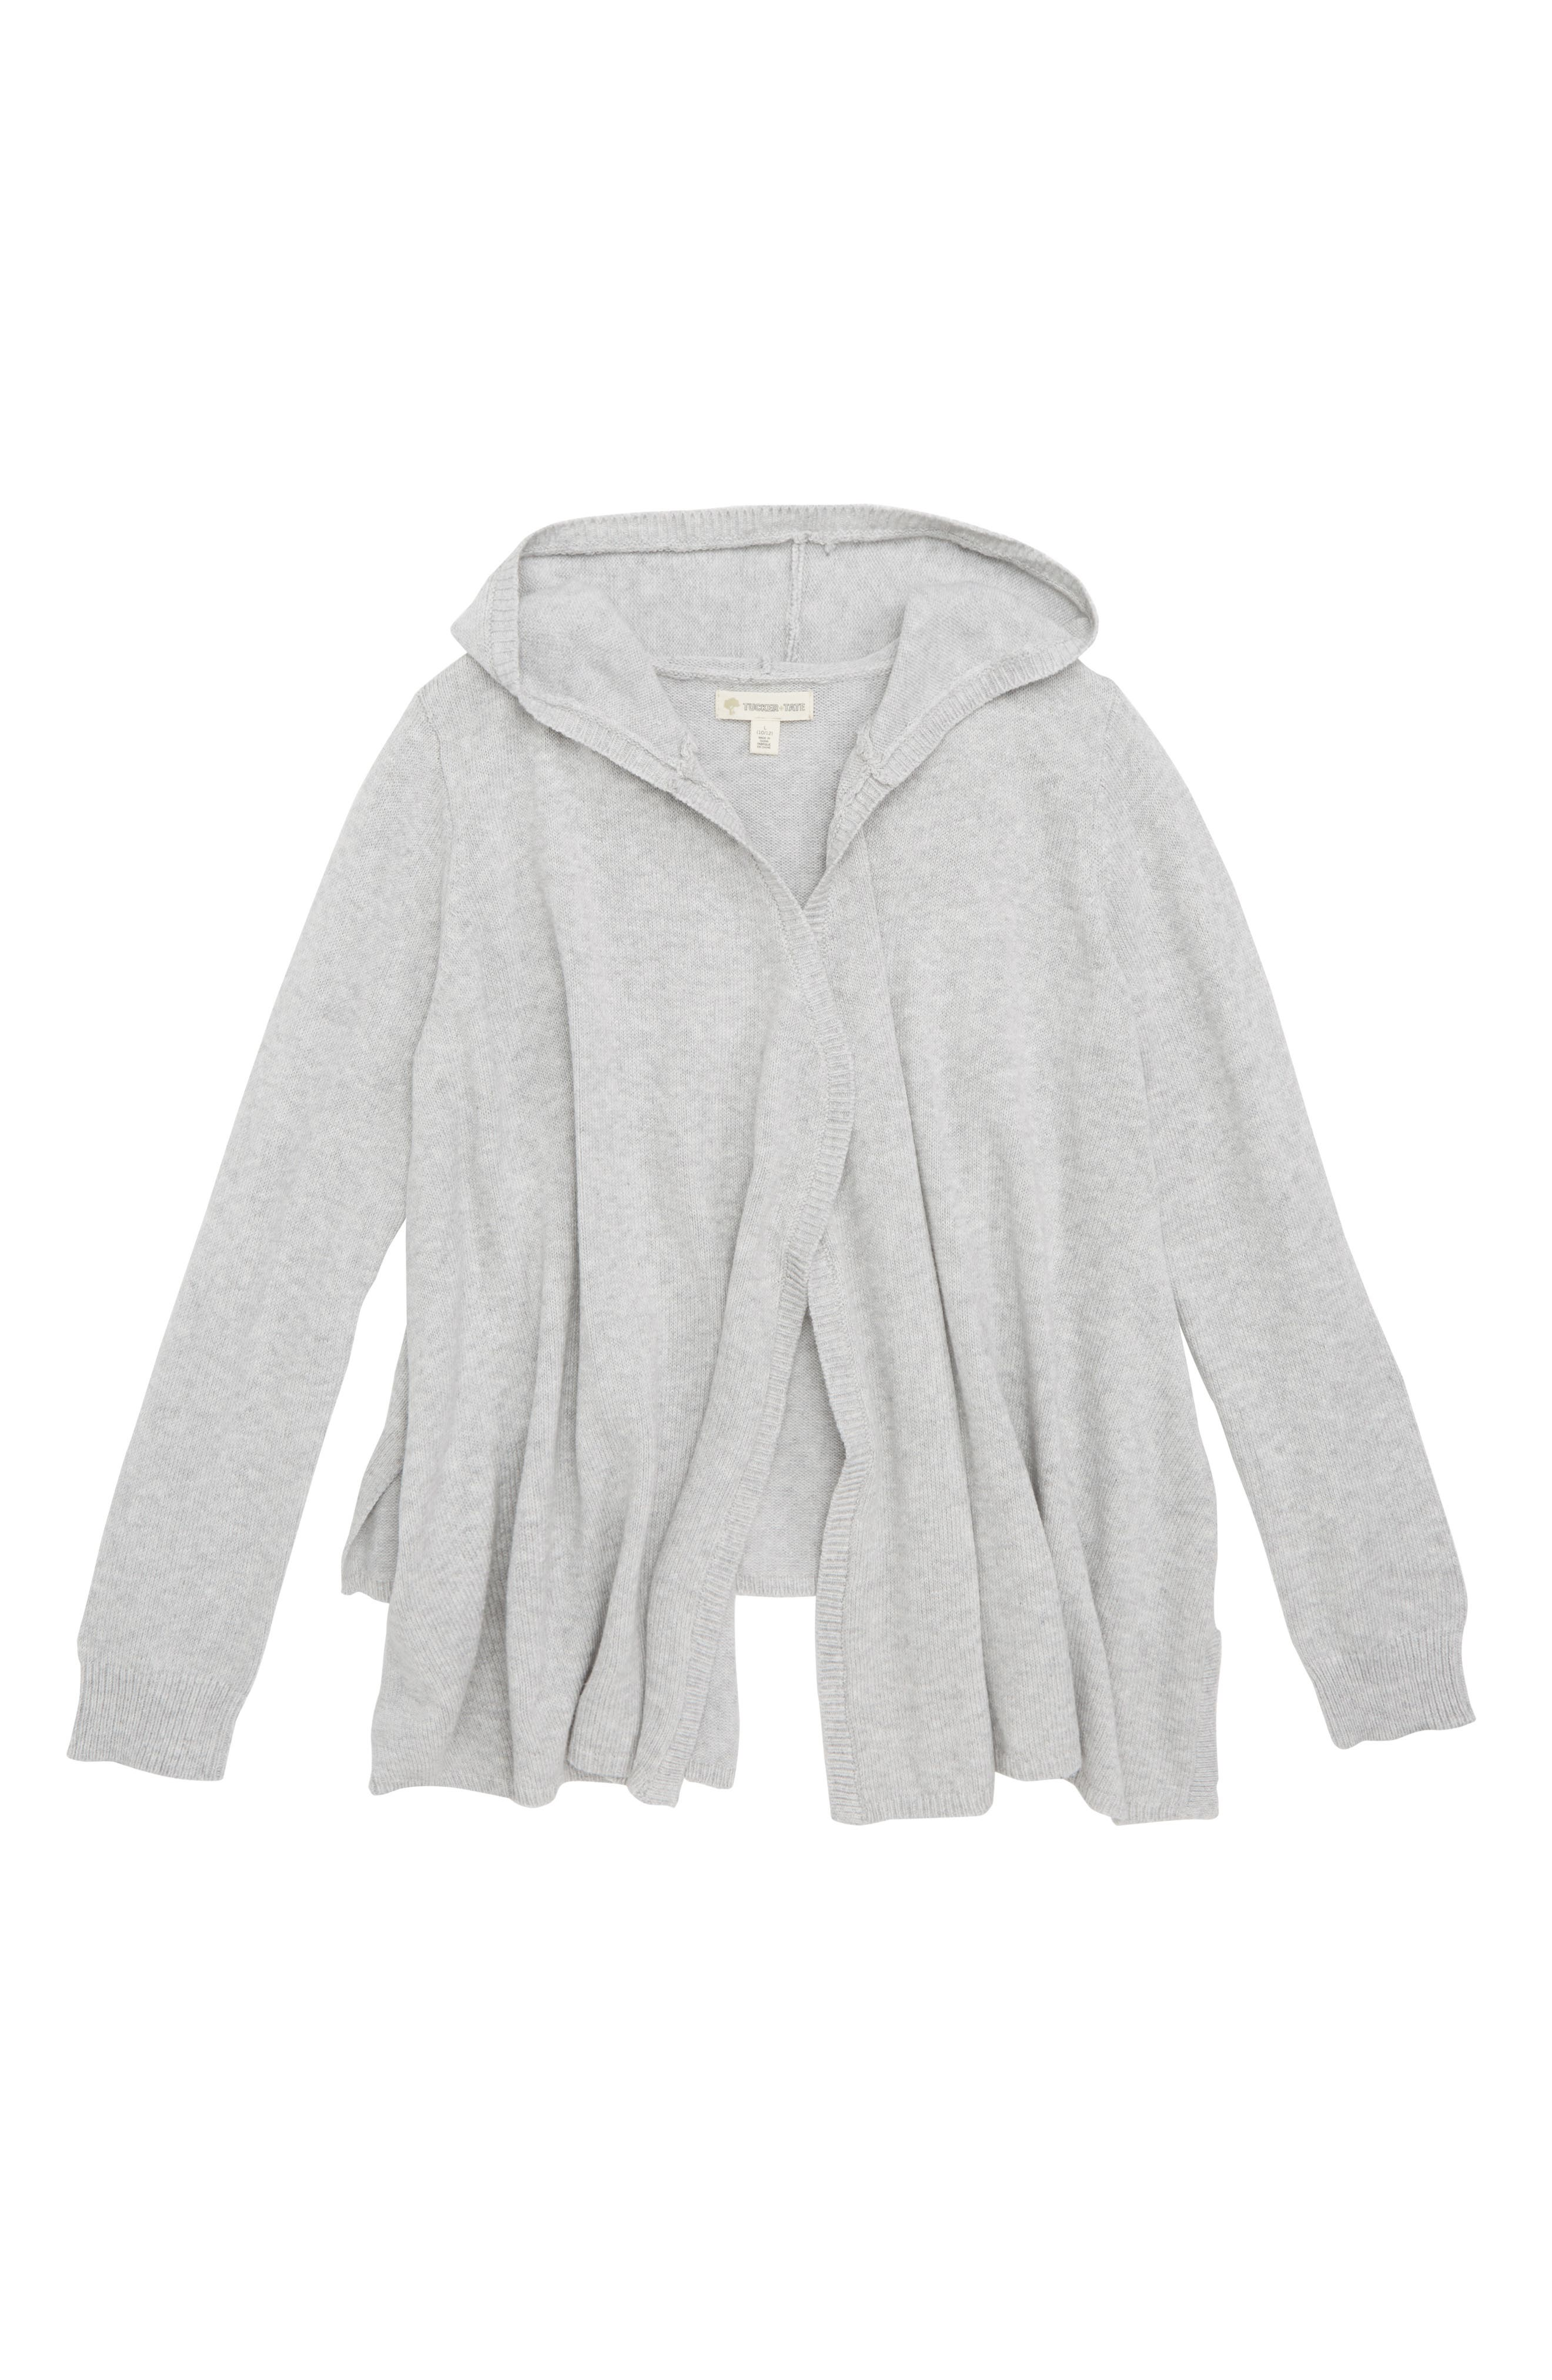 Hooded Cardigan,                             Main thumbnail 1, color,                             GREY ASH HEATHER